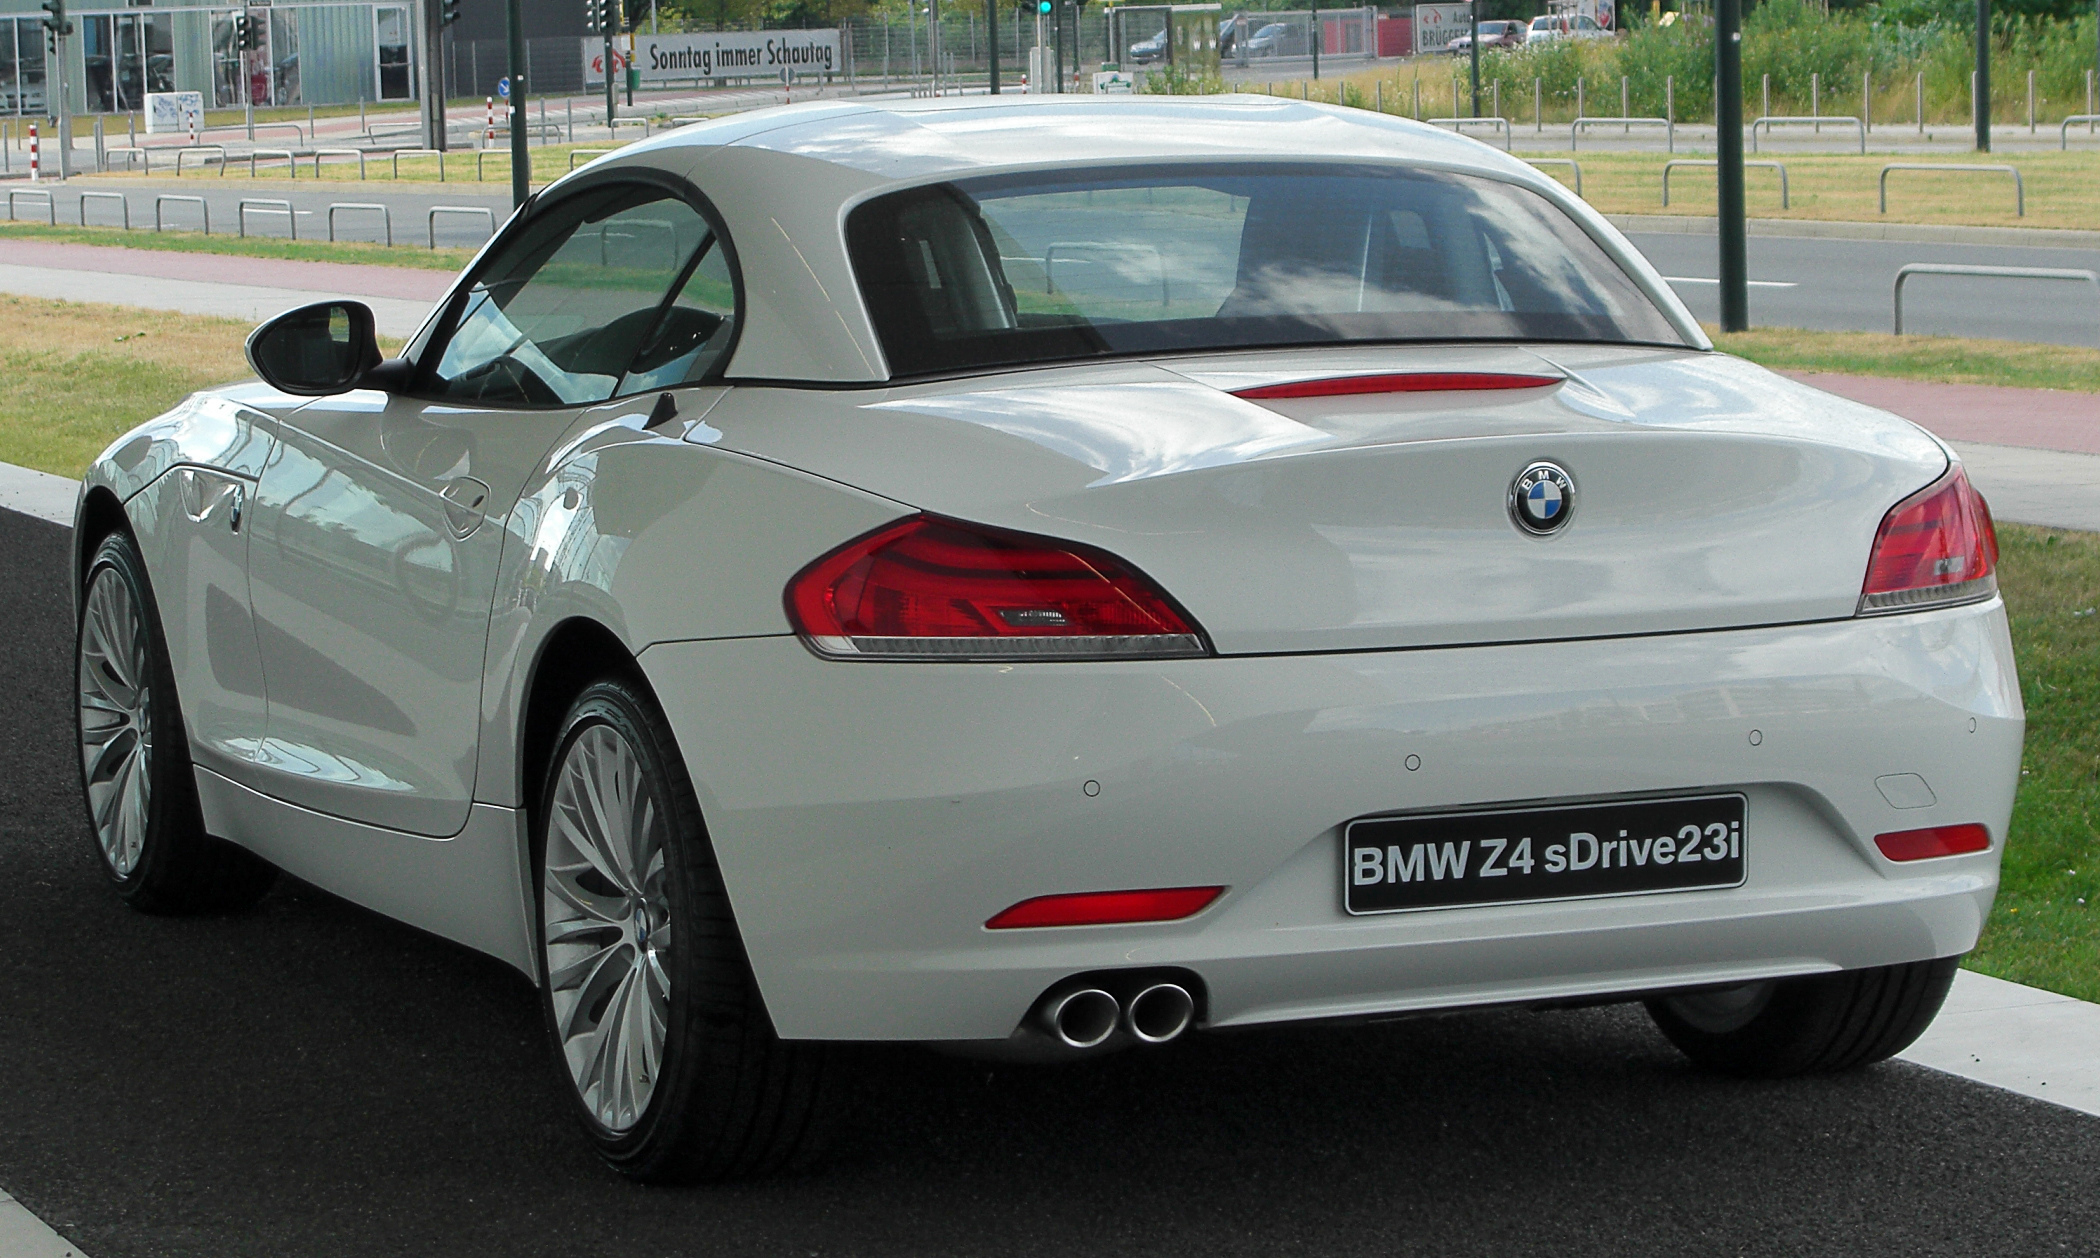 File Bmw Z4 Sdrive23i E89 Rear 20100724 Jpg Wikimedia